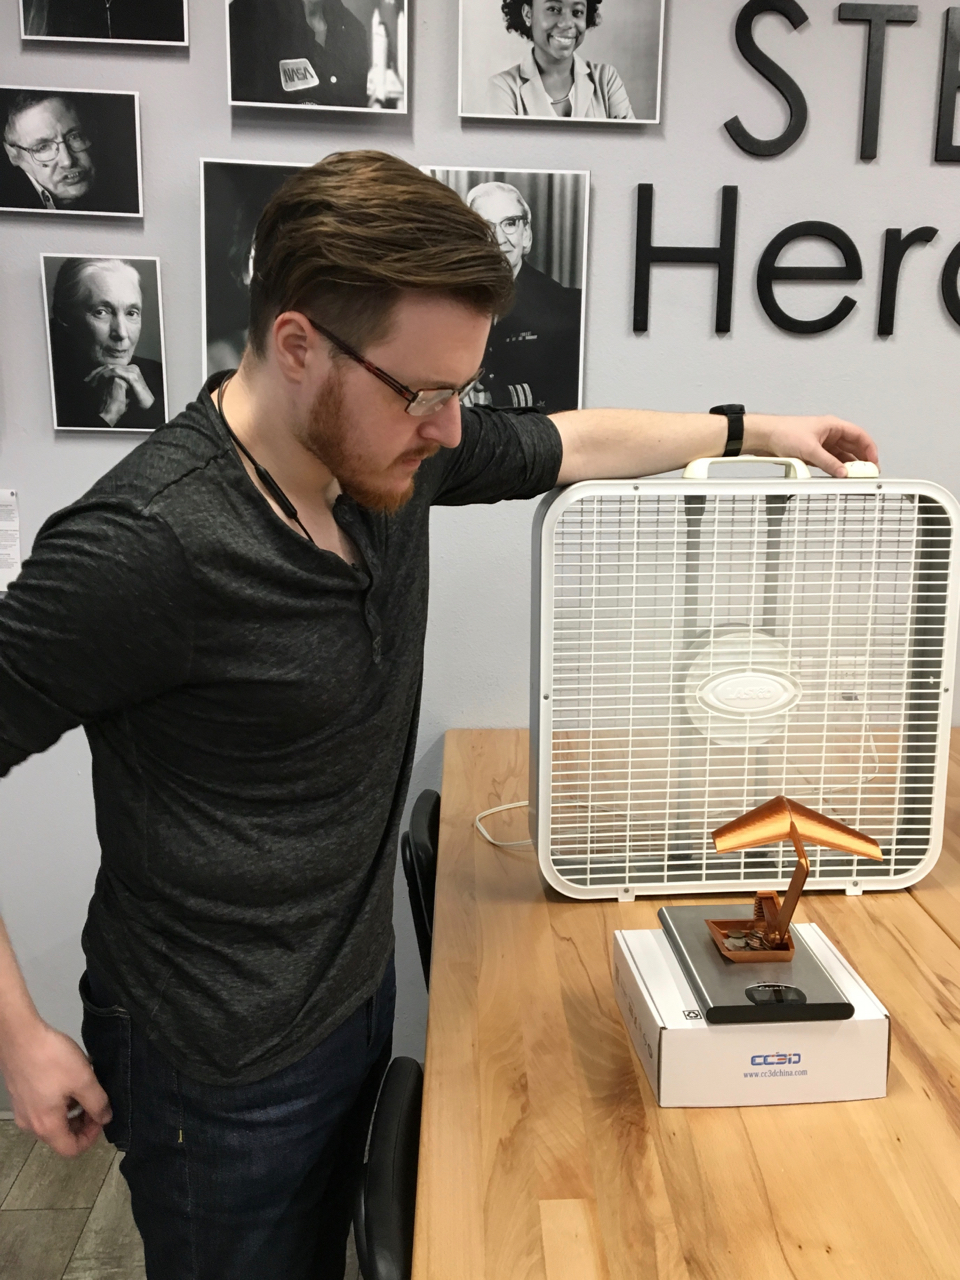 Photo of Rich standing with his hand on the box fan that is blowing on a 3D printed model of WWII wing which is sitting on a postal scale.